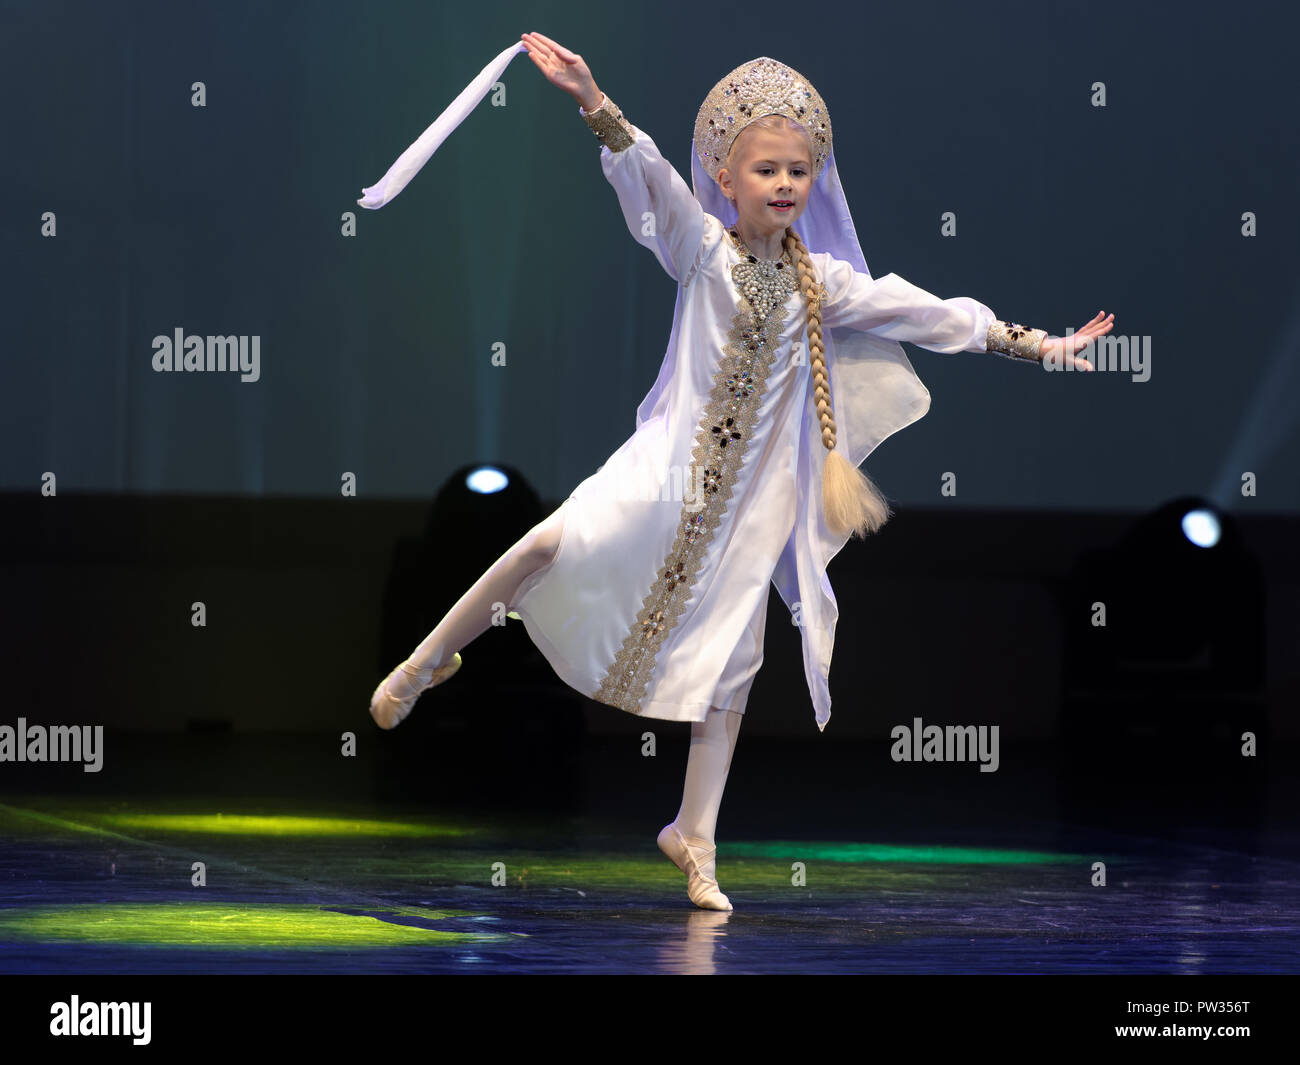 St. Petersburg, Russia - October 8, 2018: Agnia Solovyova performs in the super final of International project 'Fireworks of talents. Choreography'. M - Stock Image